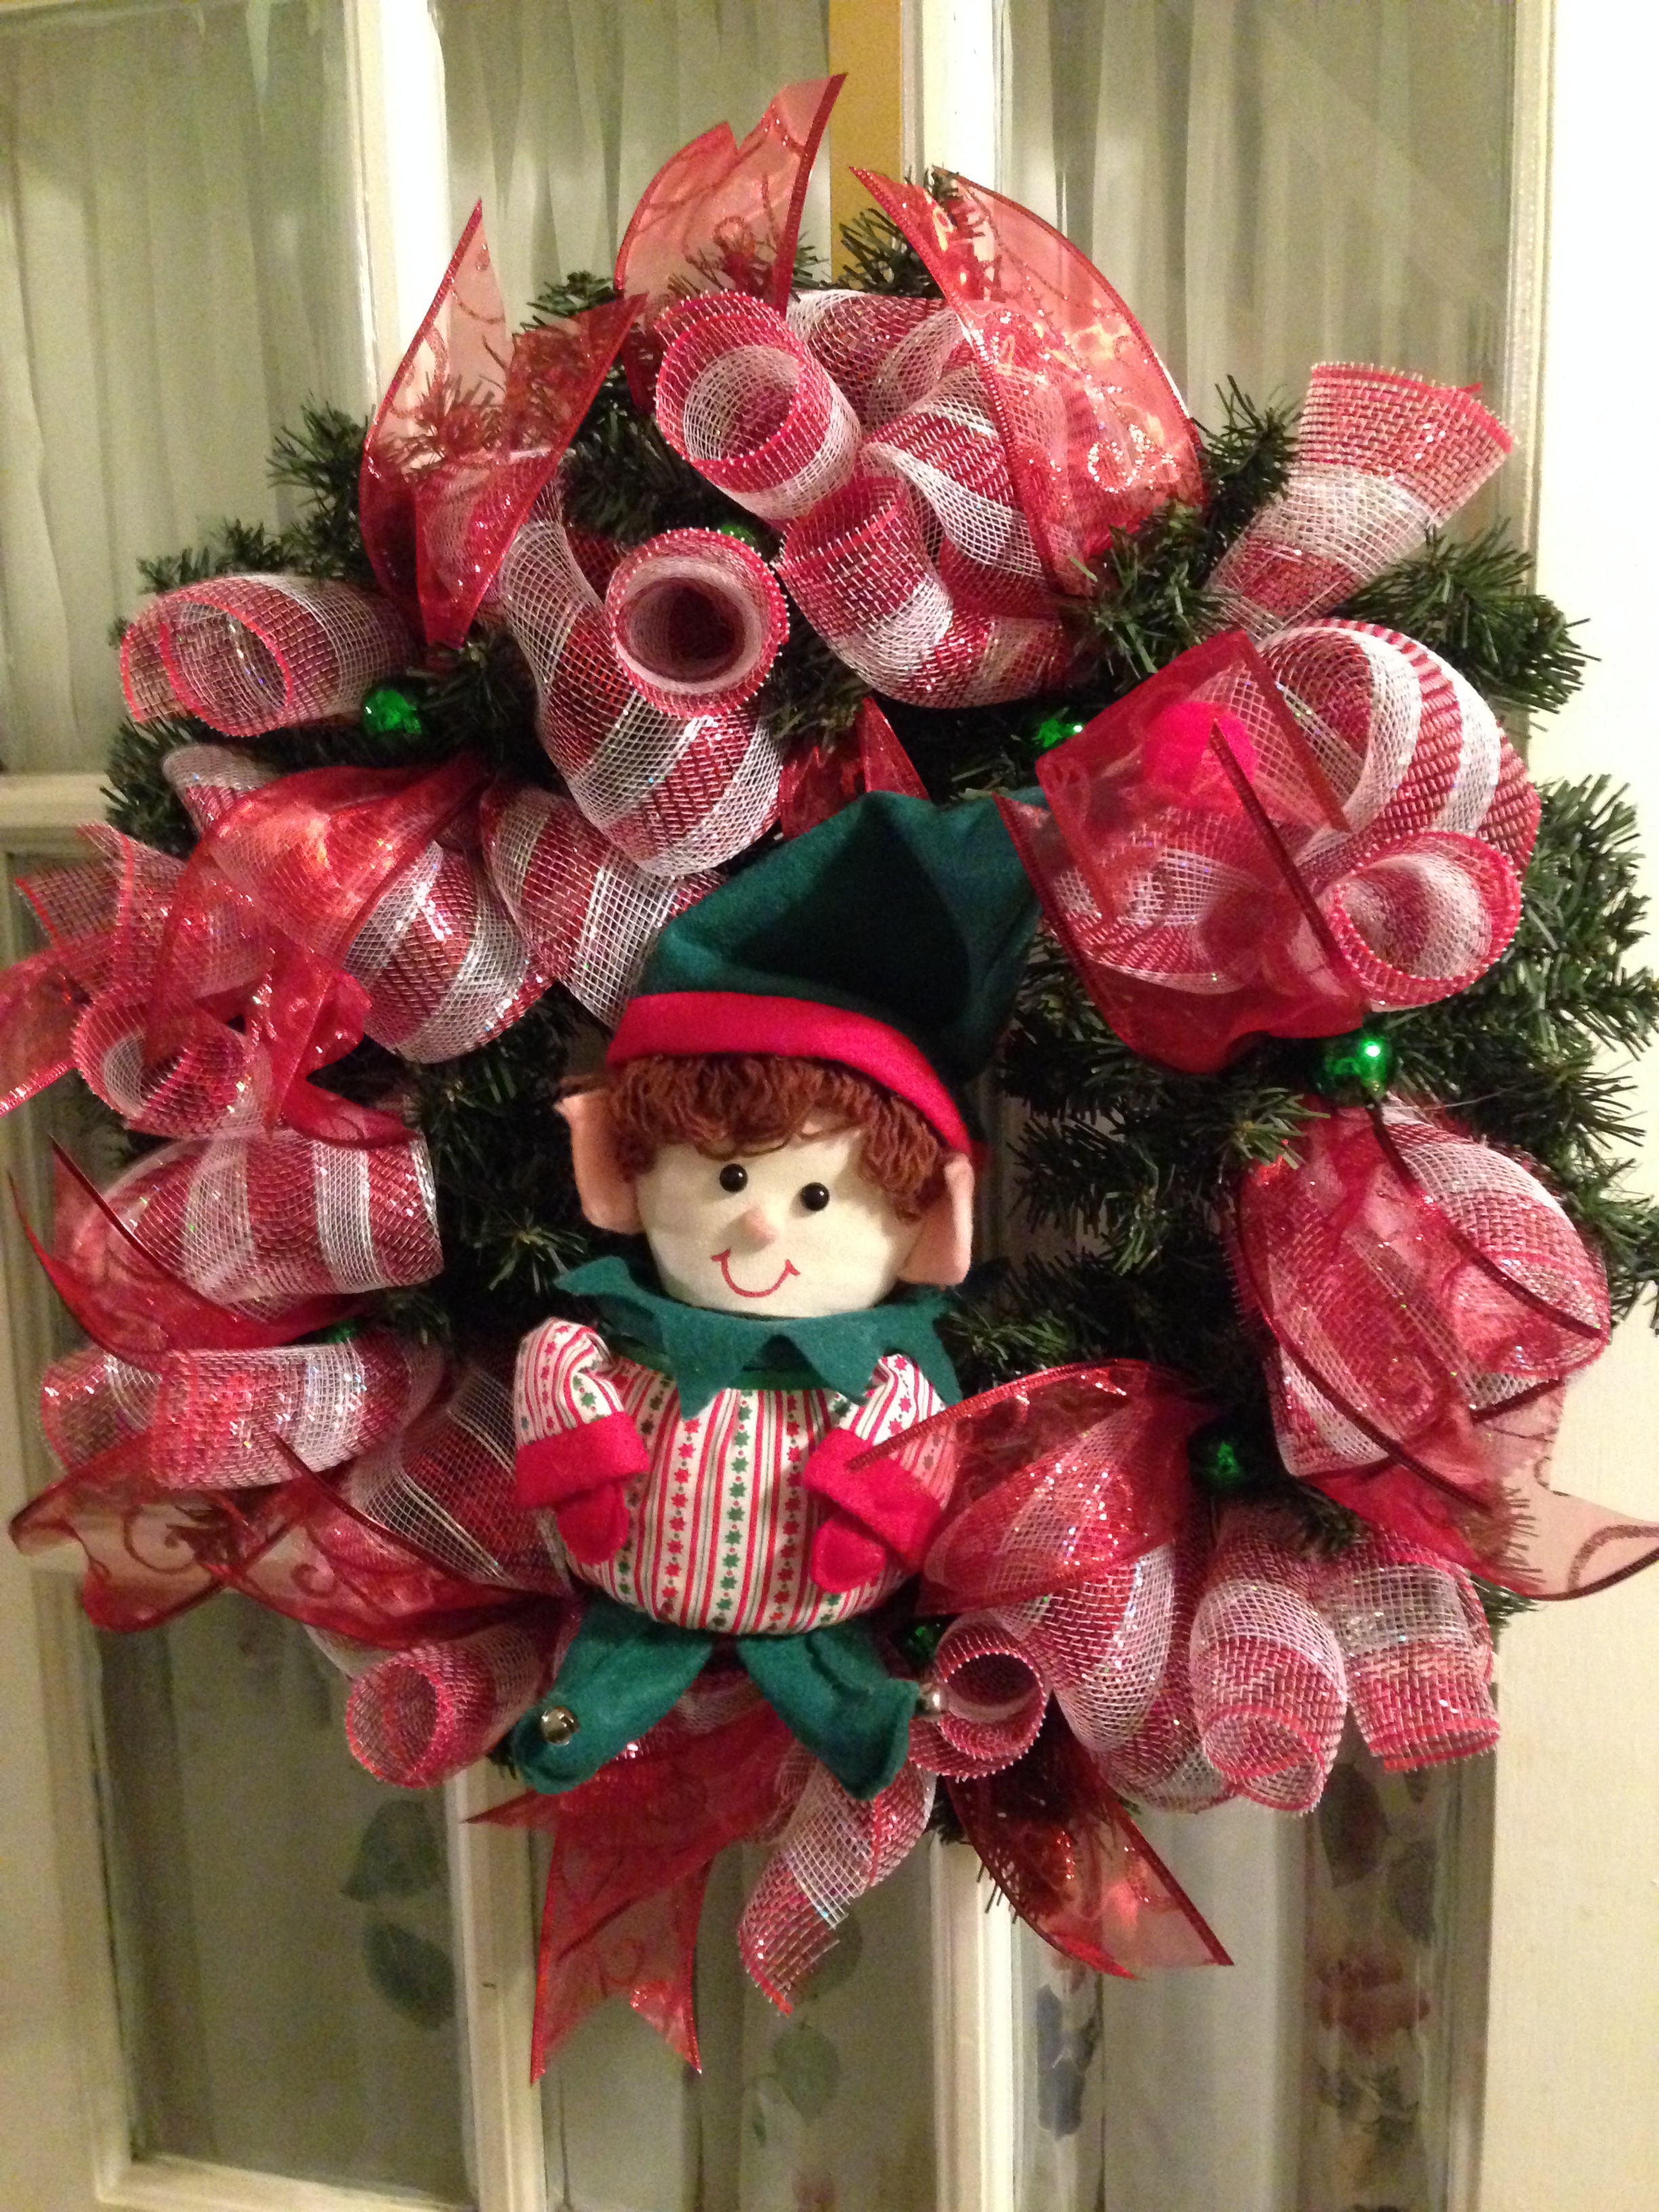 Red And White Christmas Wreath.Elf Christmas Wreath Deco Mesh Red White 24 Ribbon From Wreaths By Rosie